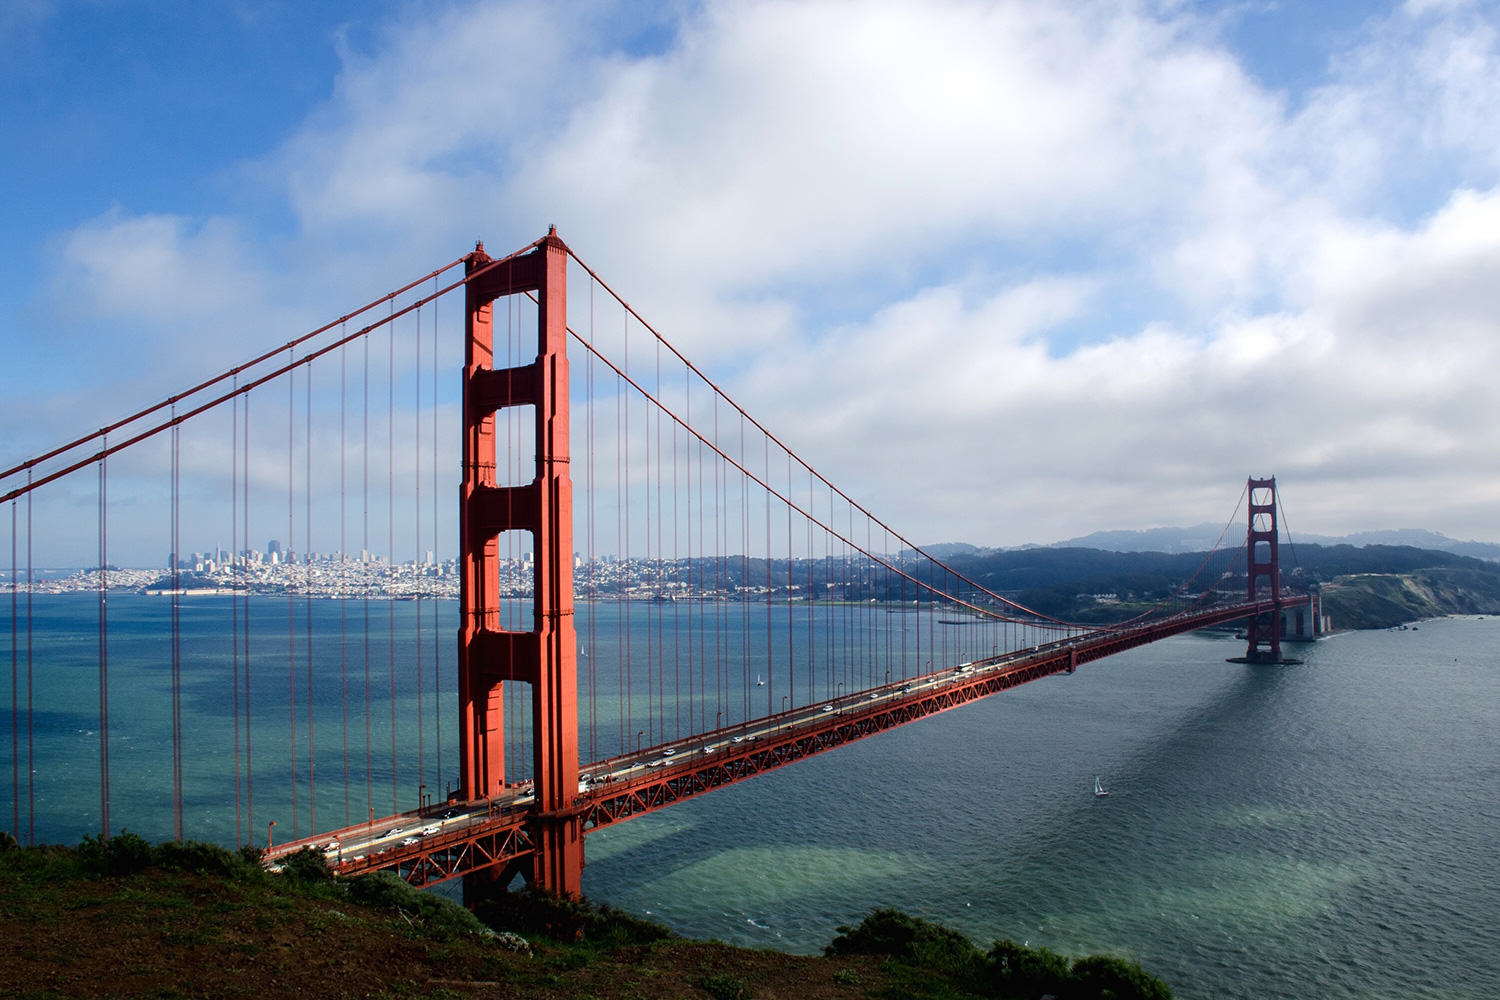 Eight Of The Funniest Trip Advisor Reviews Of Worlds Most Famous Landmarks trip advisor landmark 7